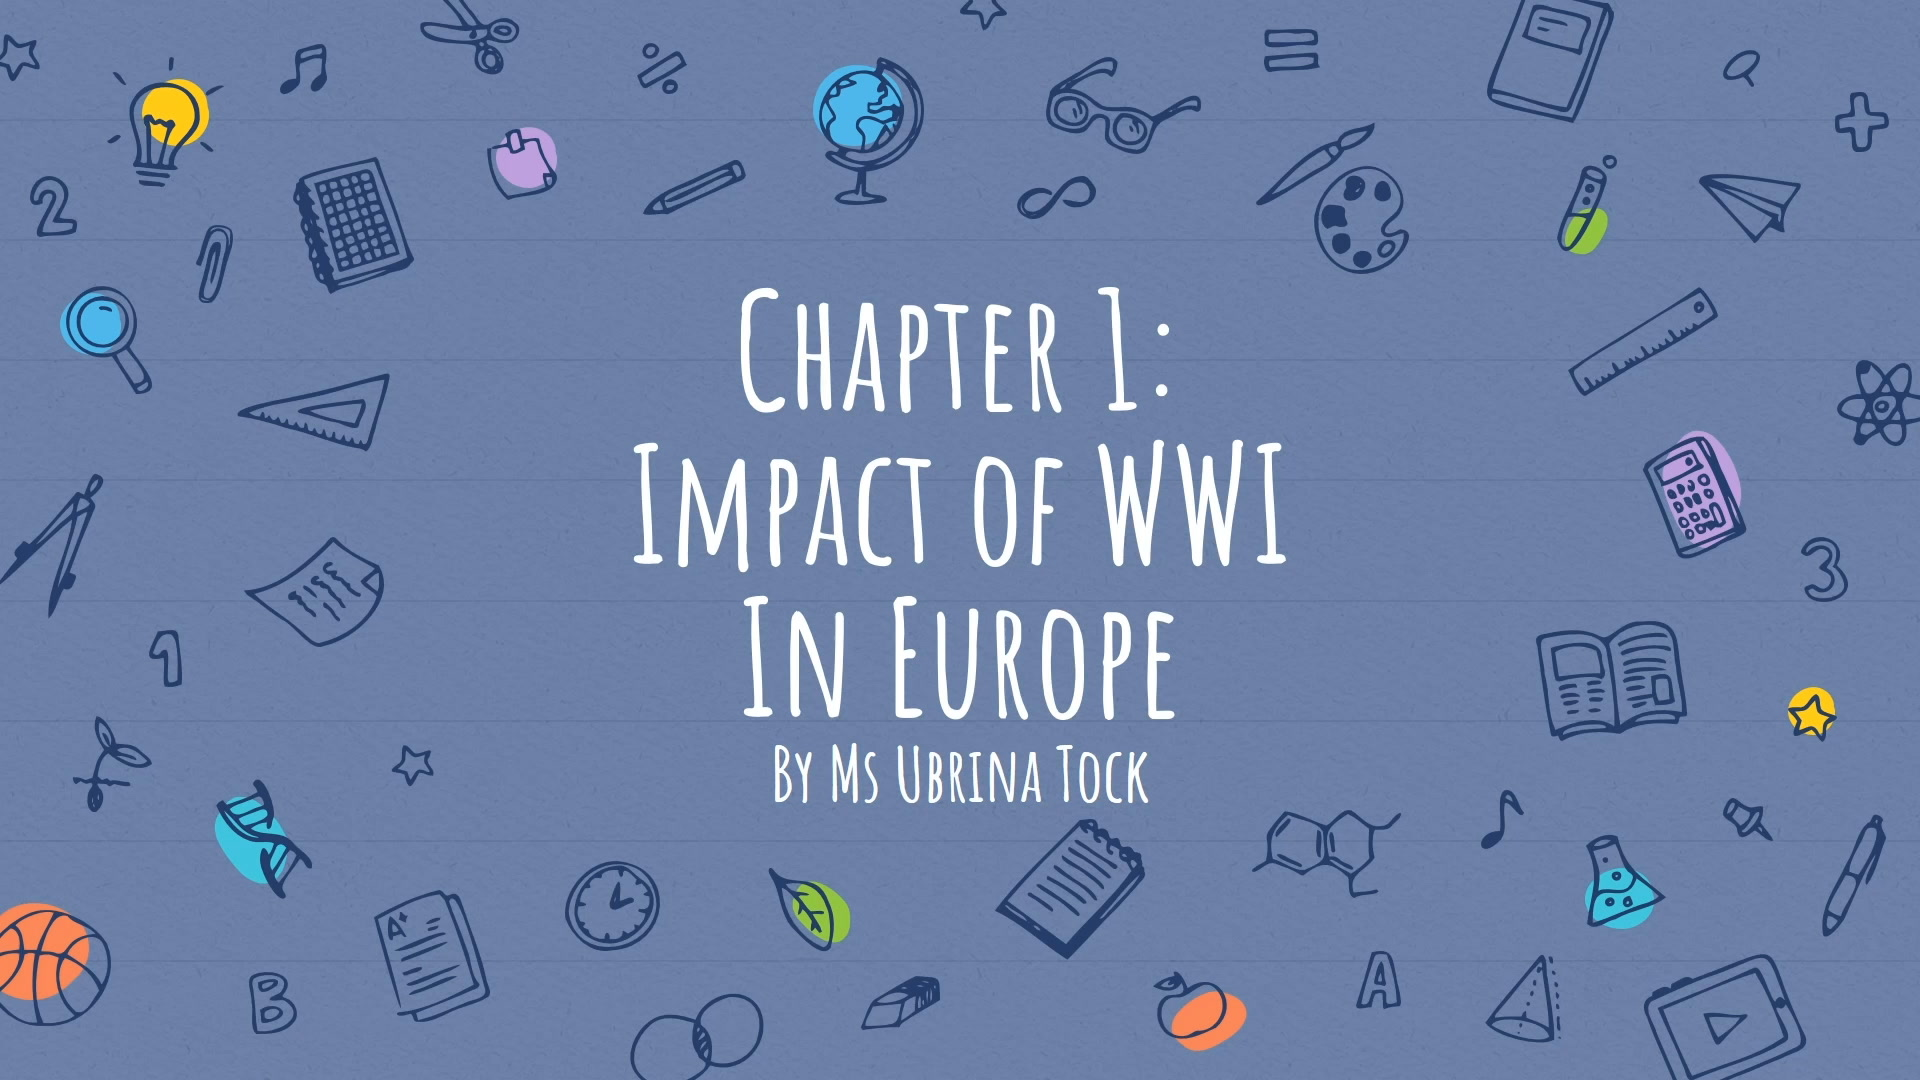 Secondary 3 History Chapter 1 - Impact of WWI in Europe